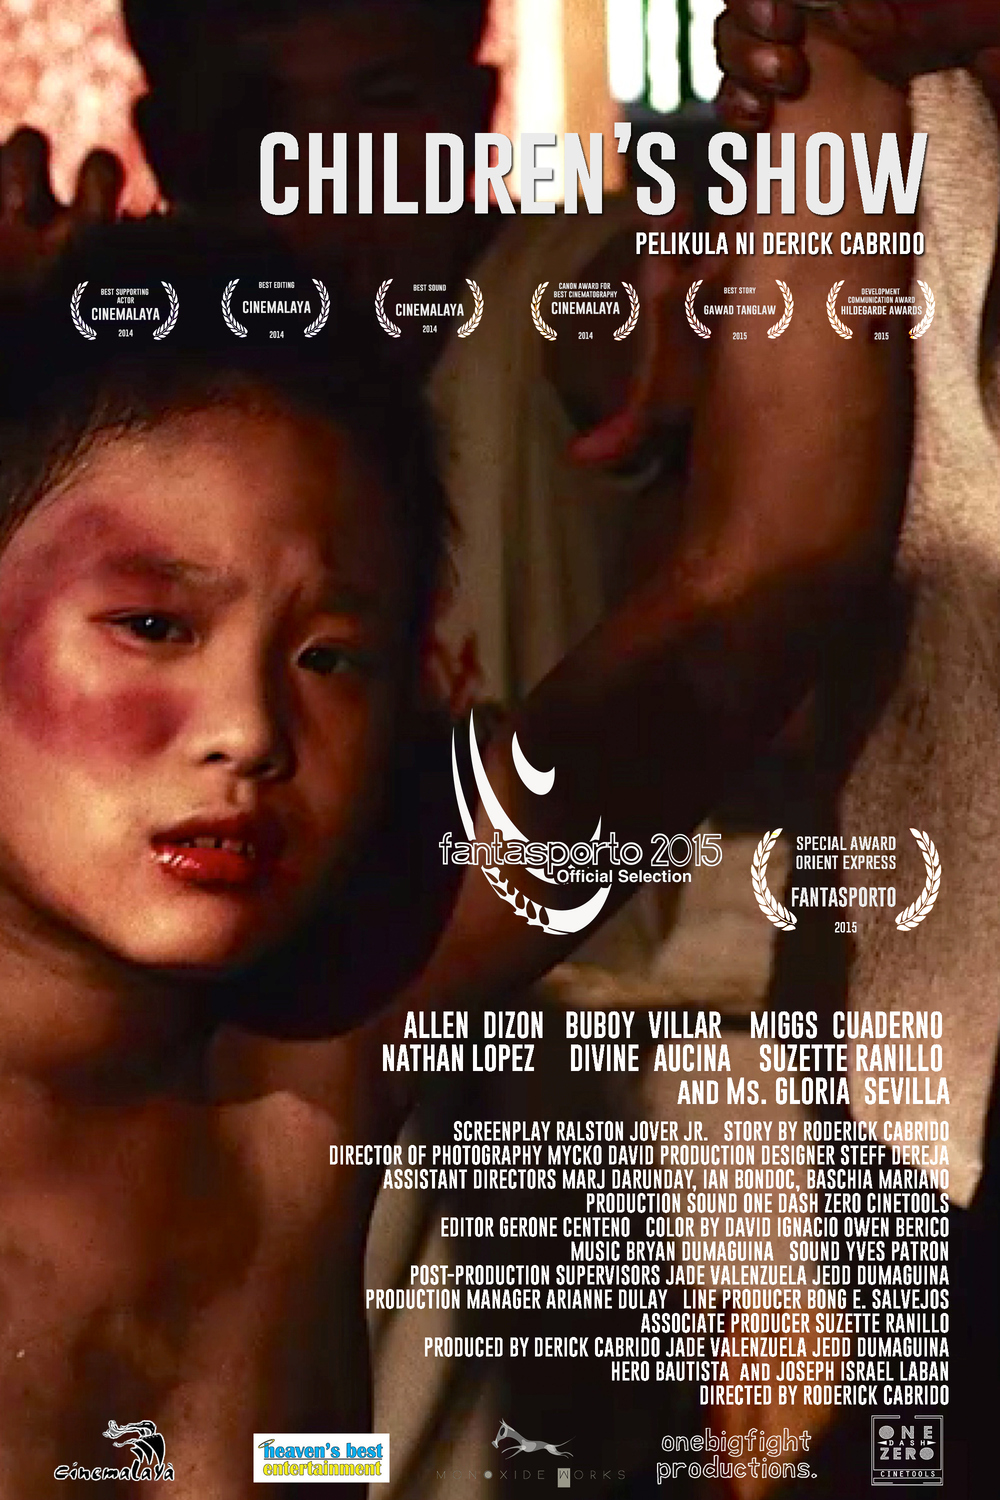 Children's Show  - 85 mins - Drama, Phillippines  Directed by Roderick Cabrido  NORTH AMERICAN PREMIERE  Synopsis:  Based on a true story of Children being used by a syndicate for an underground fighting match.    Facebook    Twitter